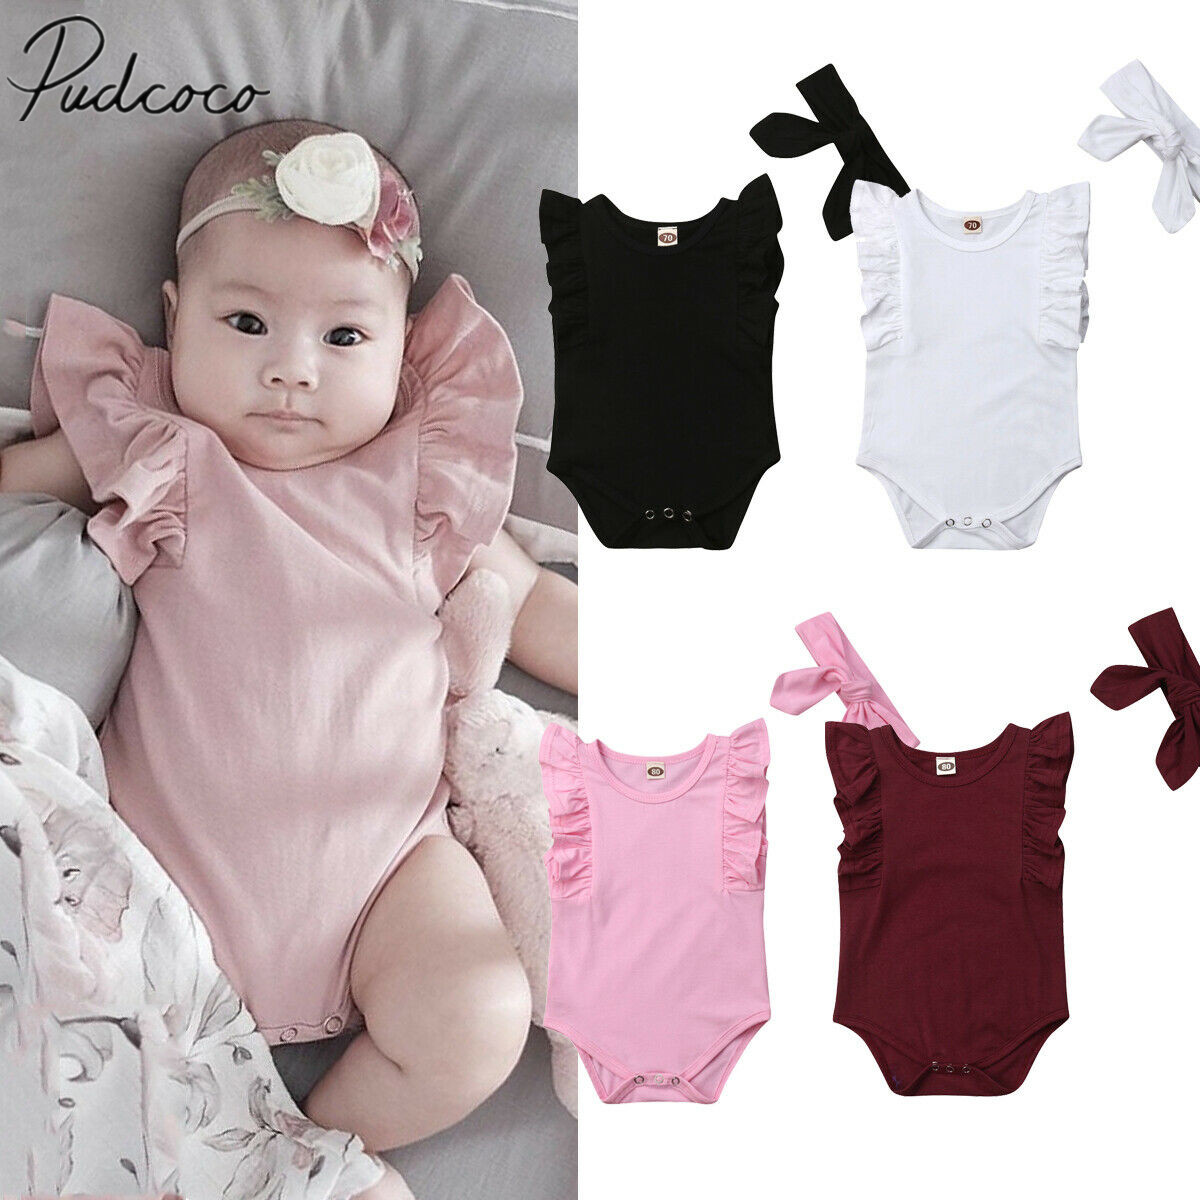 885f36982874 2019 Brand New Newborn Infant Baby Girls Boys Ruffle Solid Bodysuit  Sleeveless Sunsuit Cotton Jumpsuit Outfit Clothes Summer